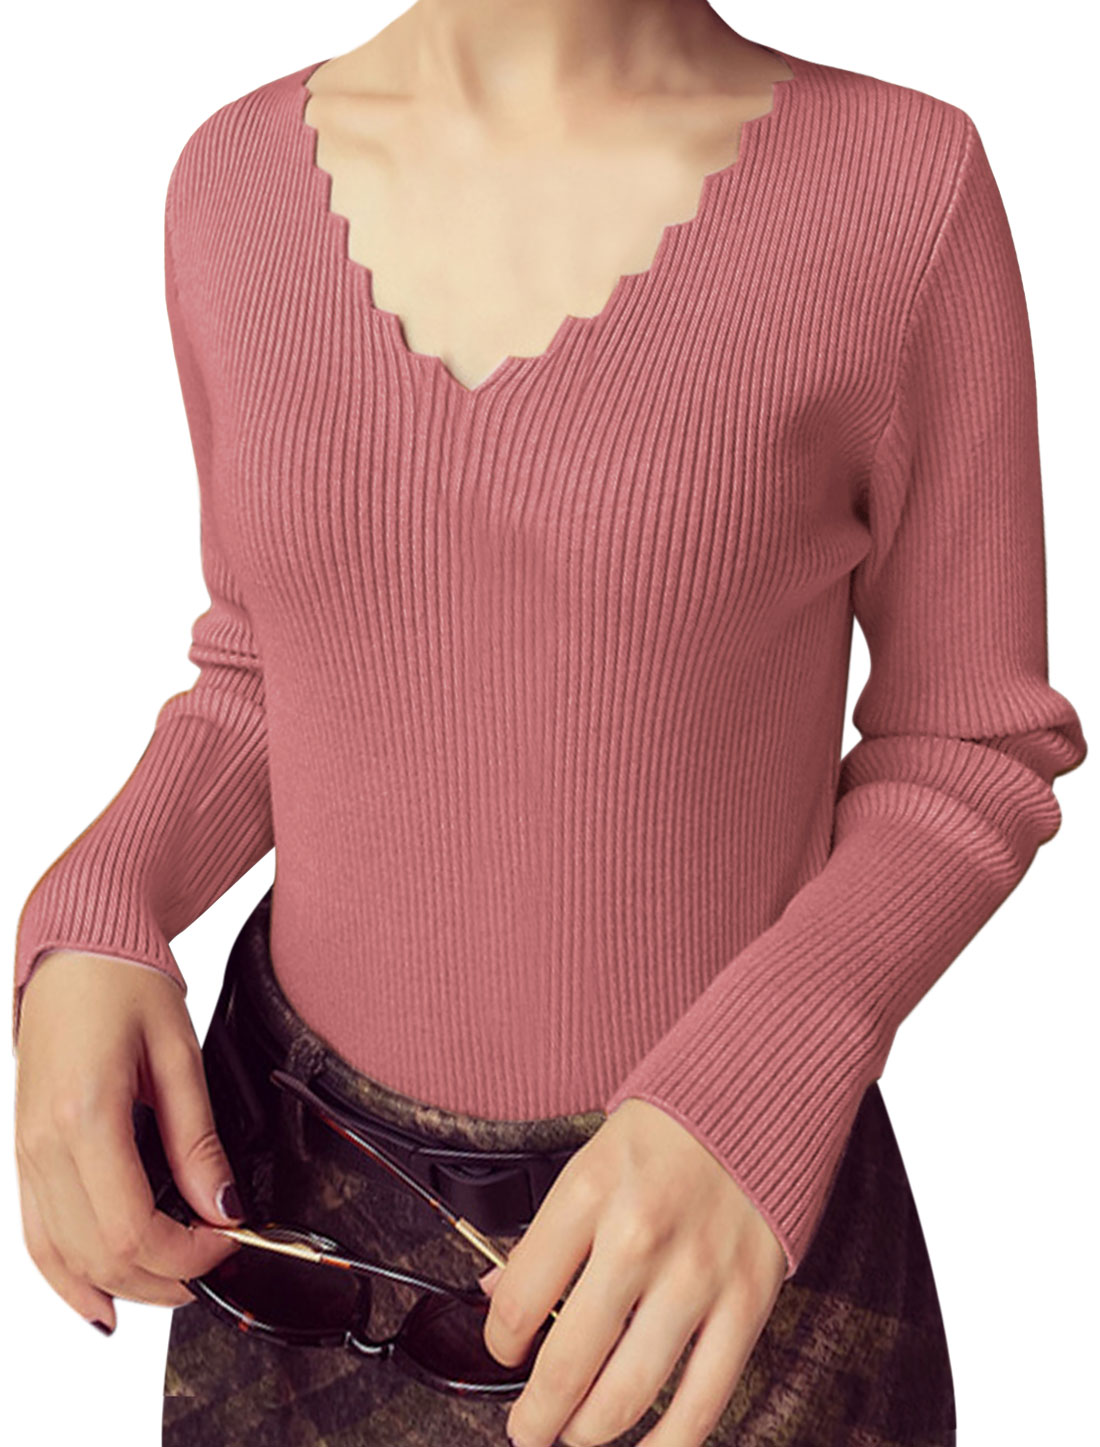 Women Scalloped V Neck Long Sleeves Slim Fit Knit Top Pink XS